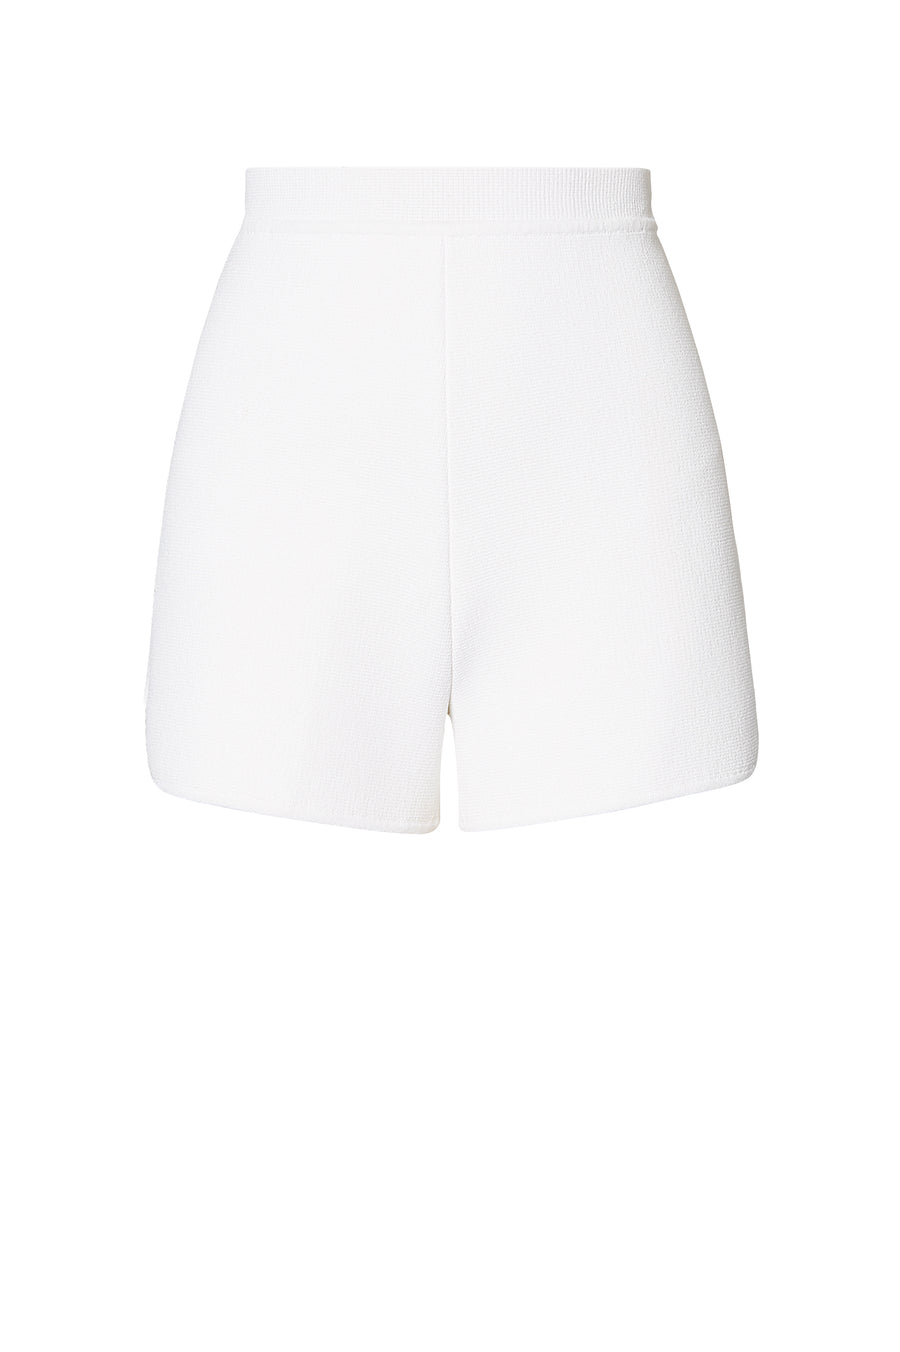 Crepe Knit shorts, high waisted, fitted short, mid thigh, Color White